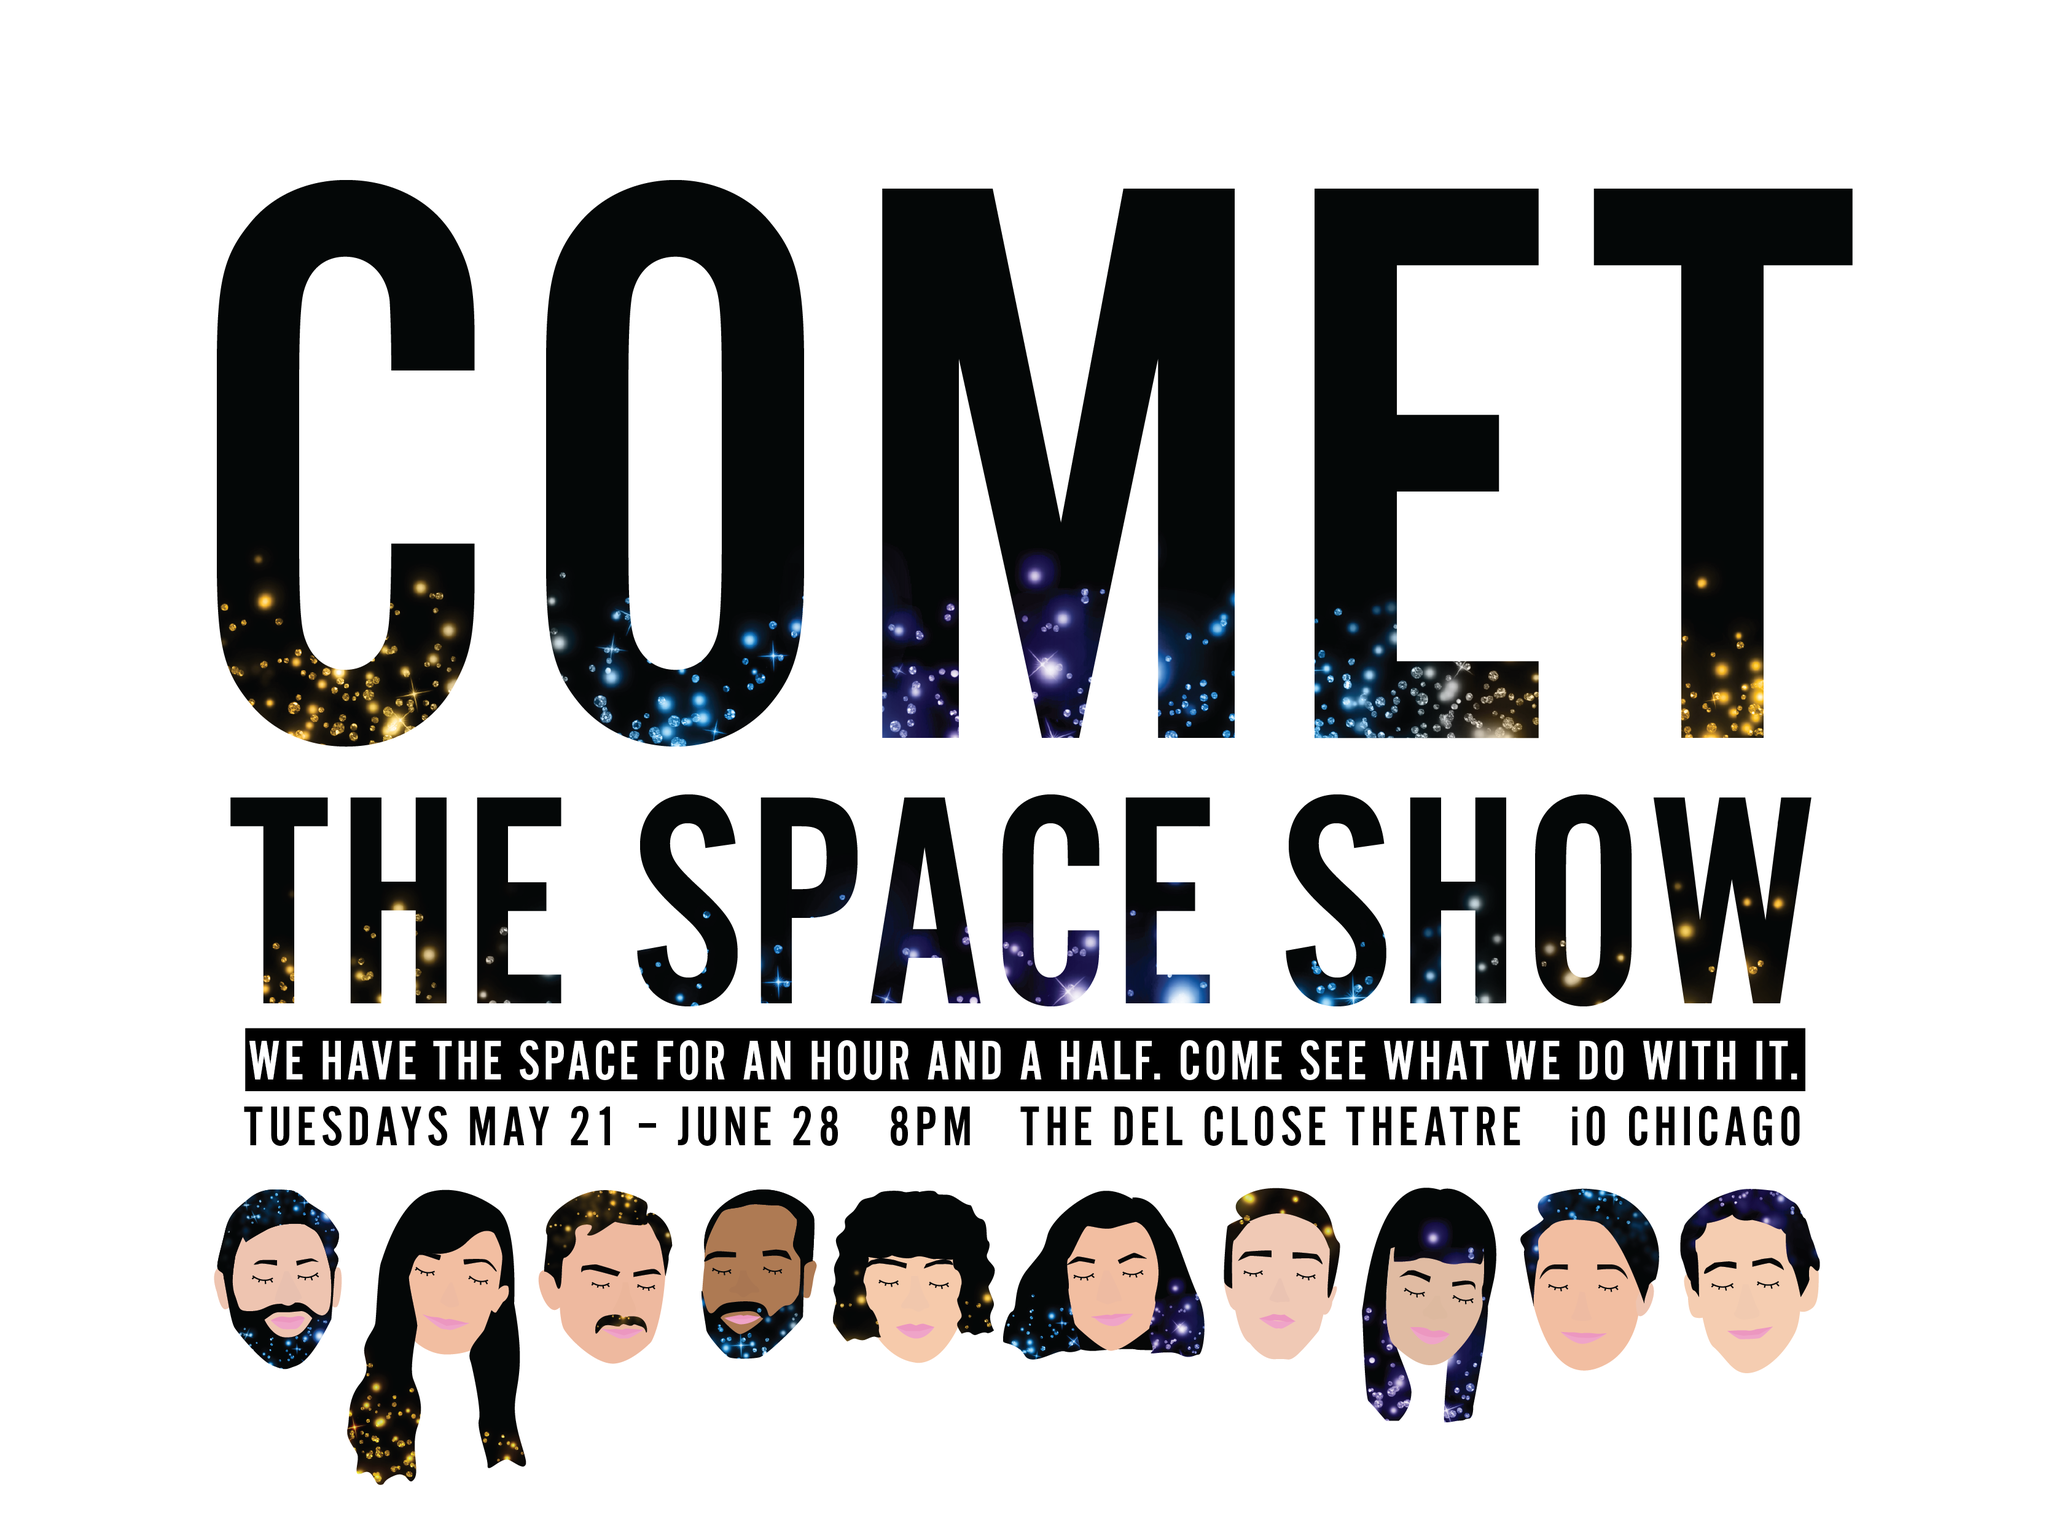 The Space Show with Comet, The Harold Team Crocodile Nasties